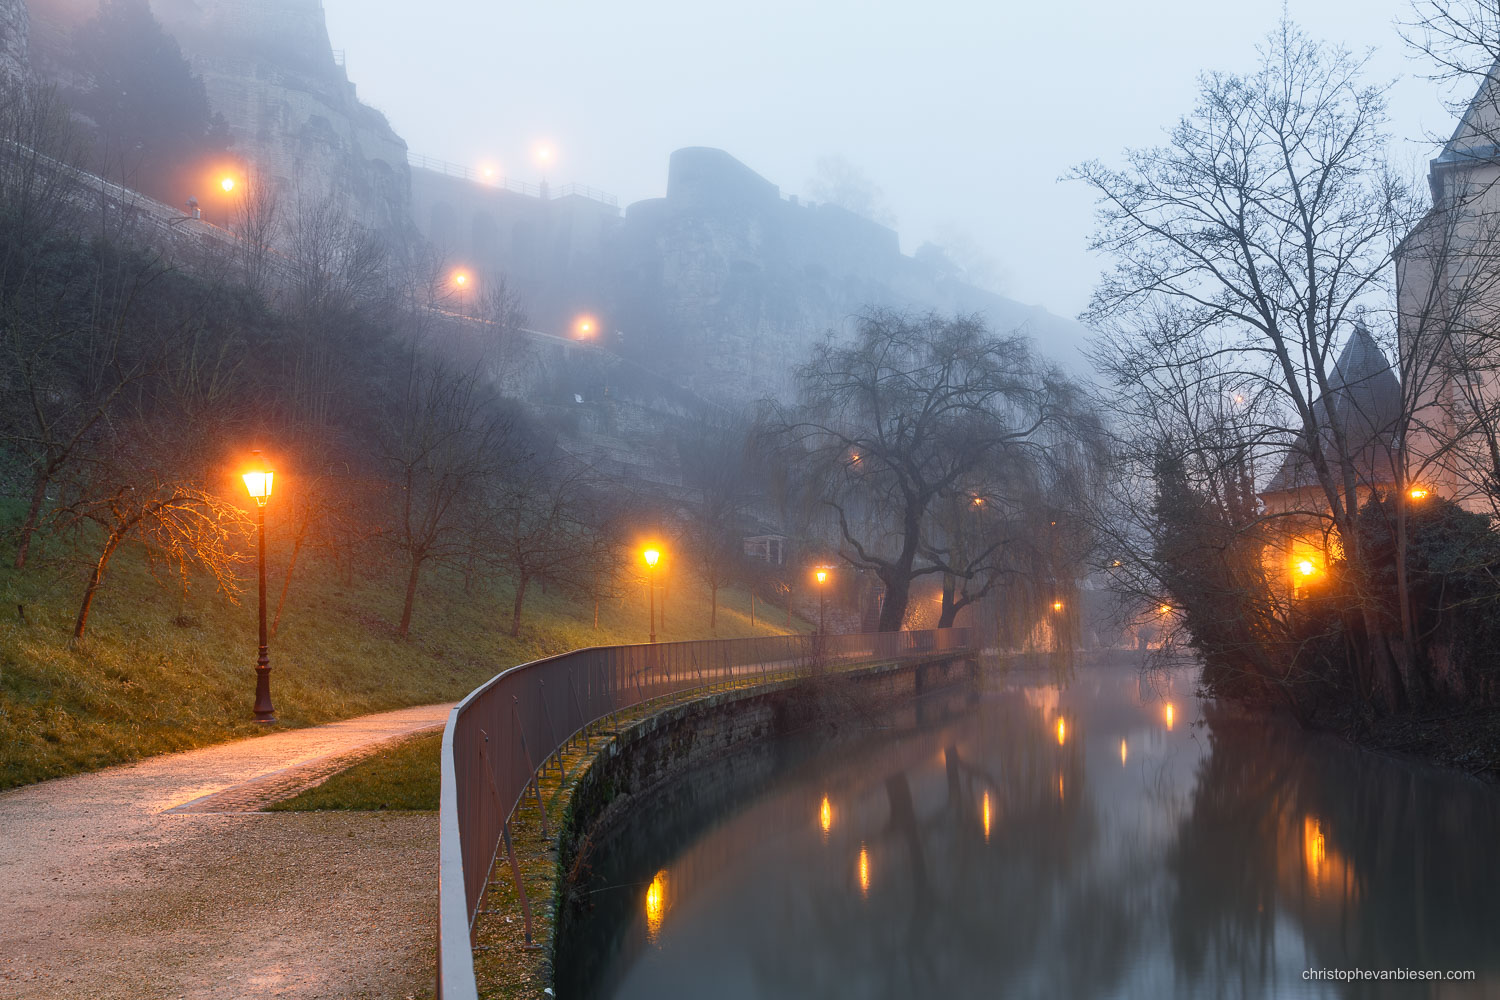 Top 25 photos made in Luxembourg - Dawn at Luxembourg City's Alzette